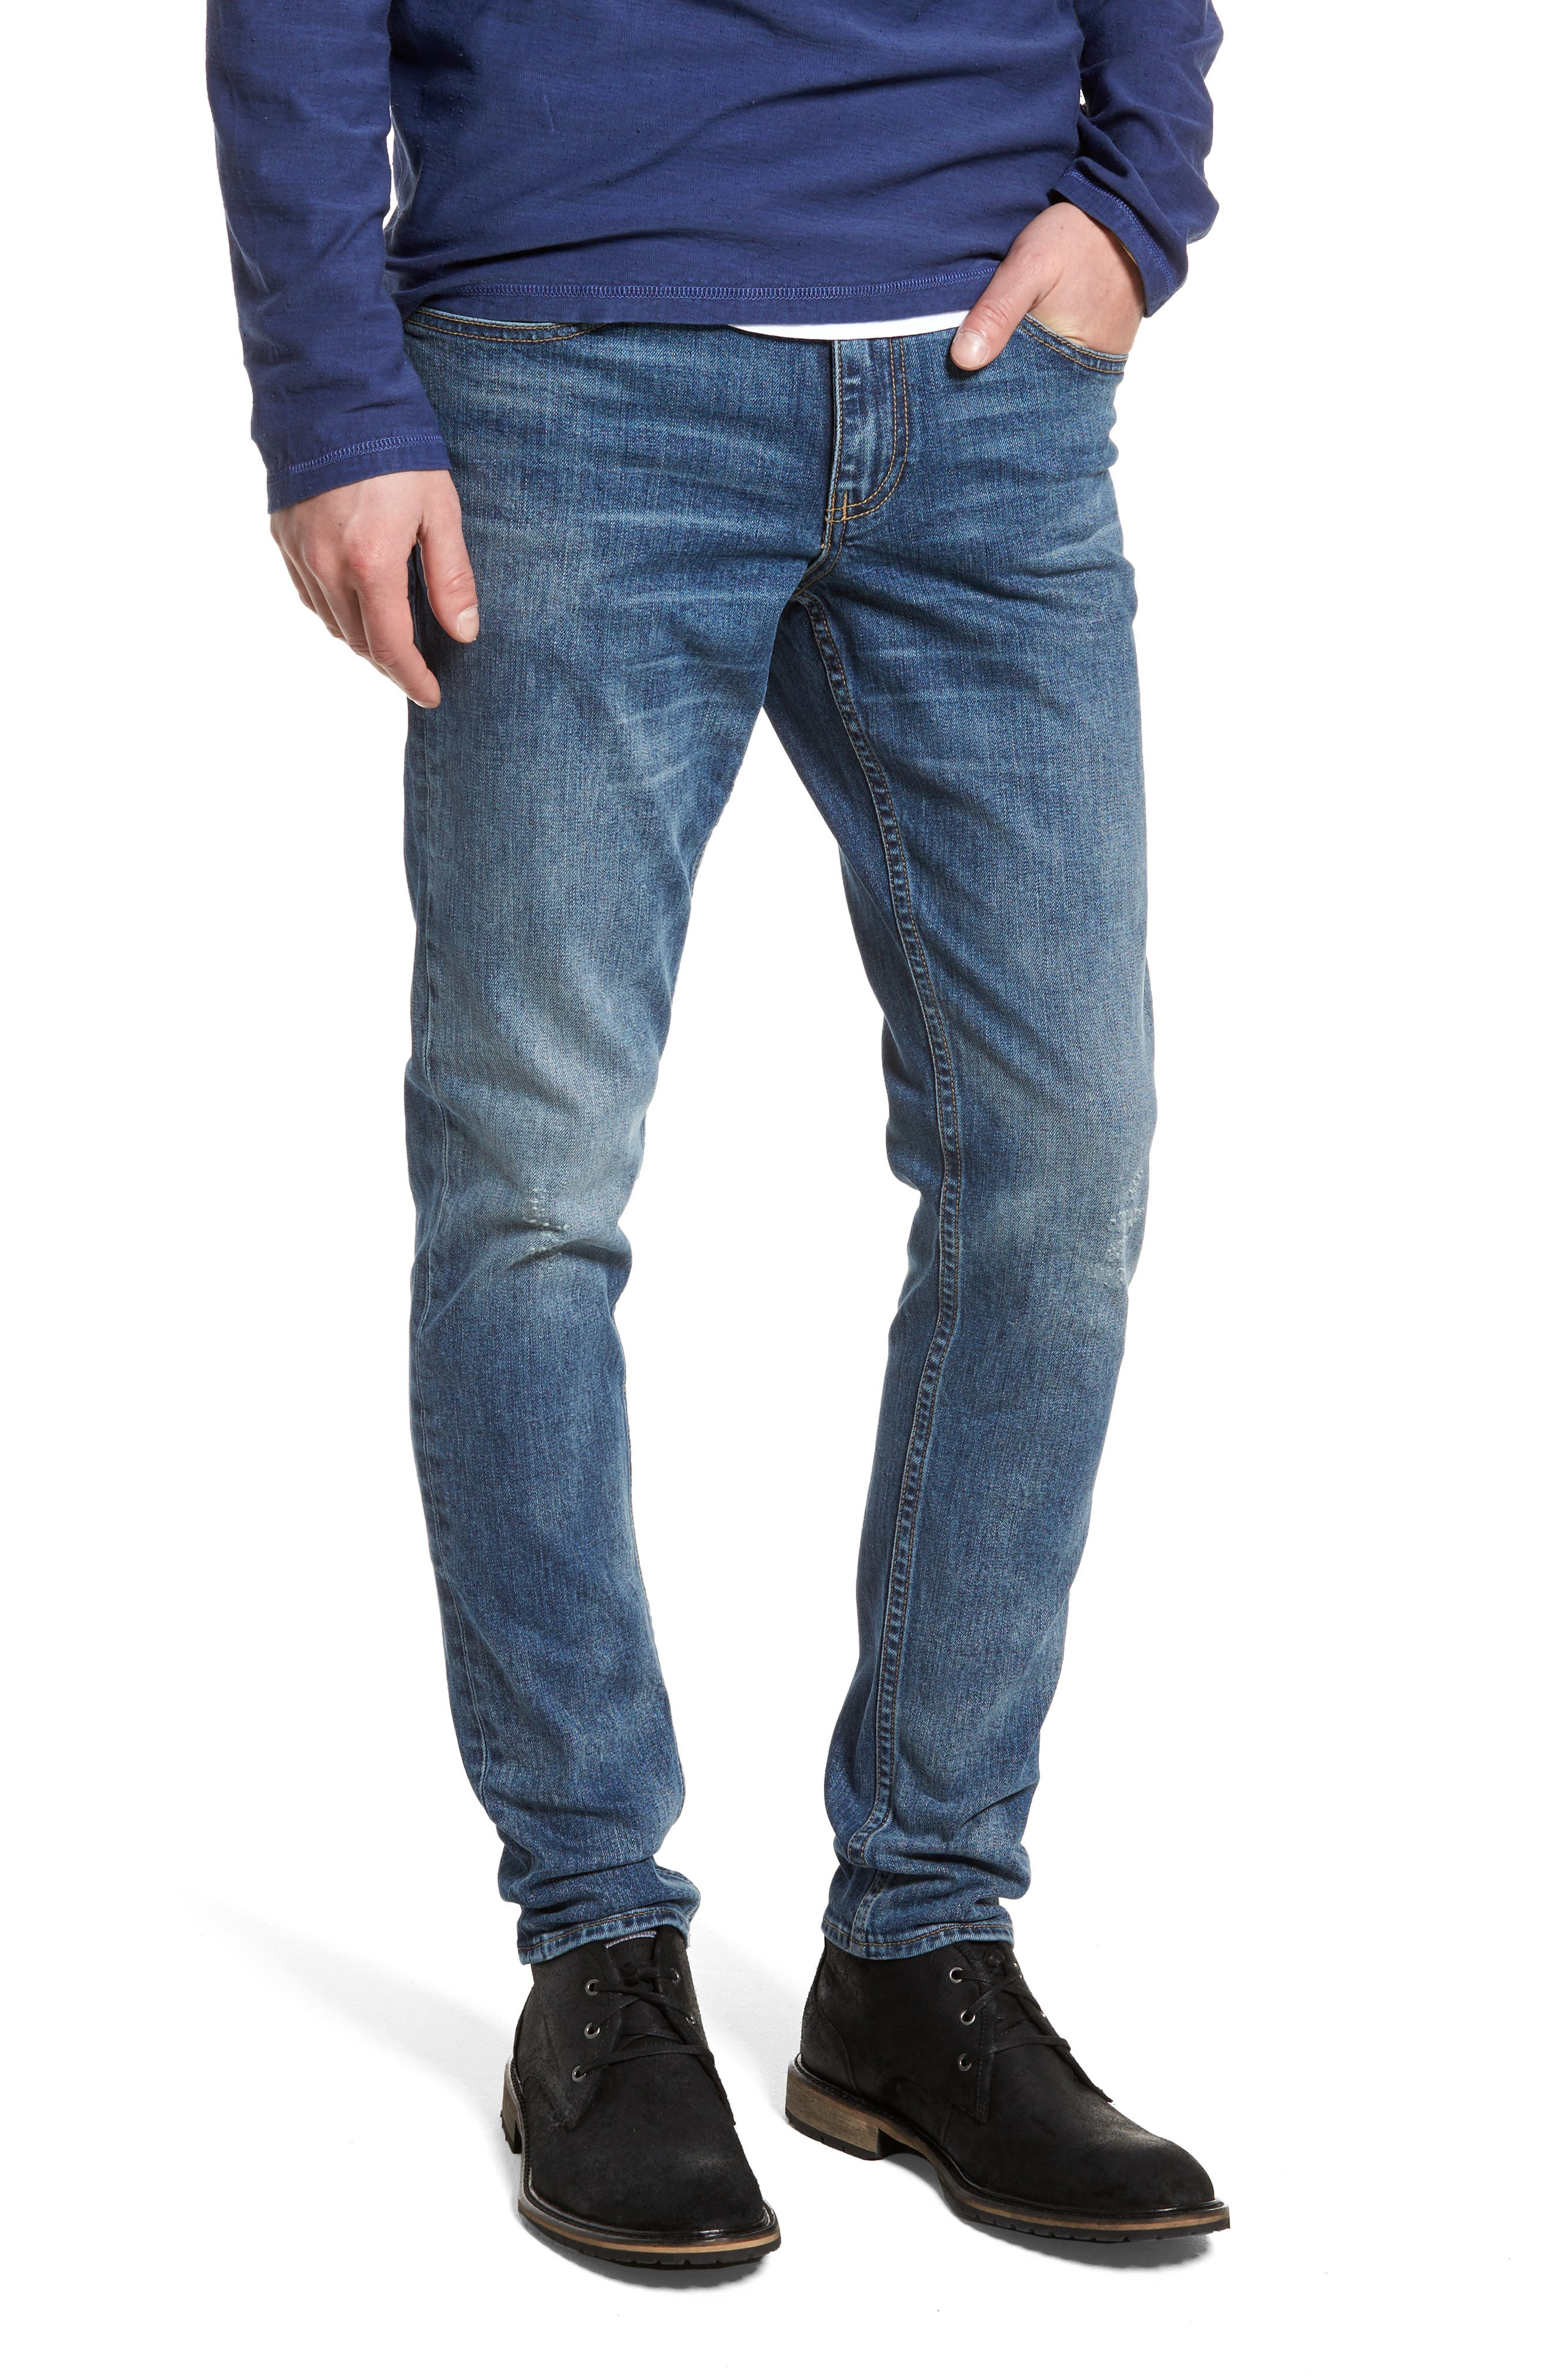 Treasure & Bond Skinny Fit Jeans (Blue Cement Wash)